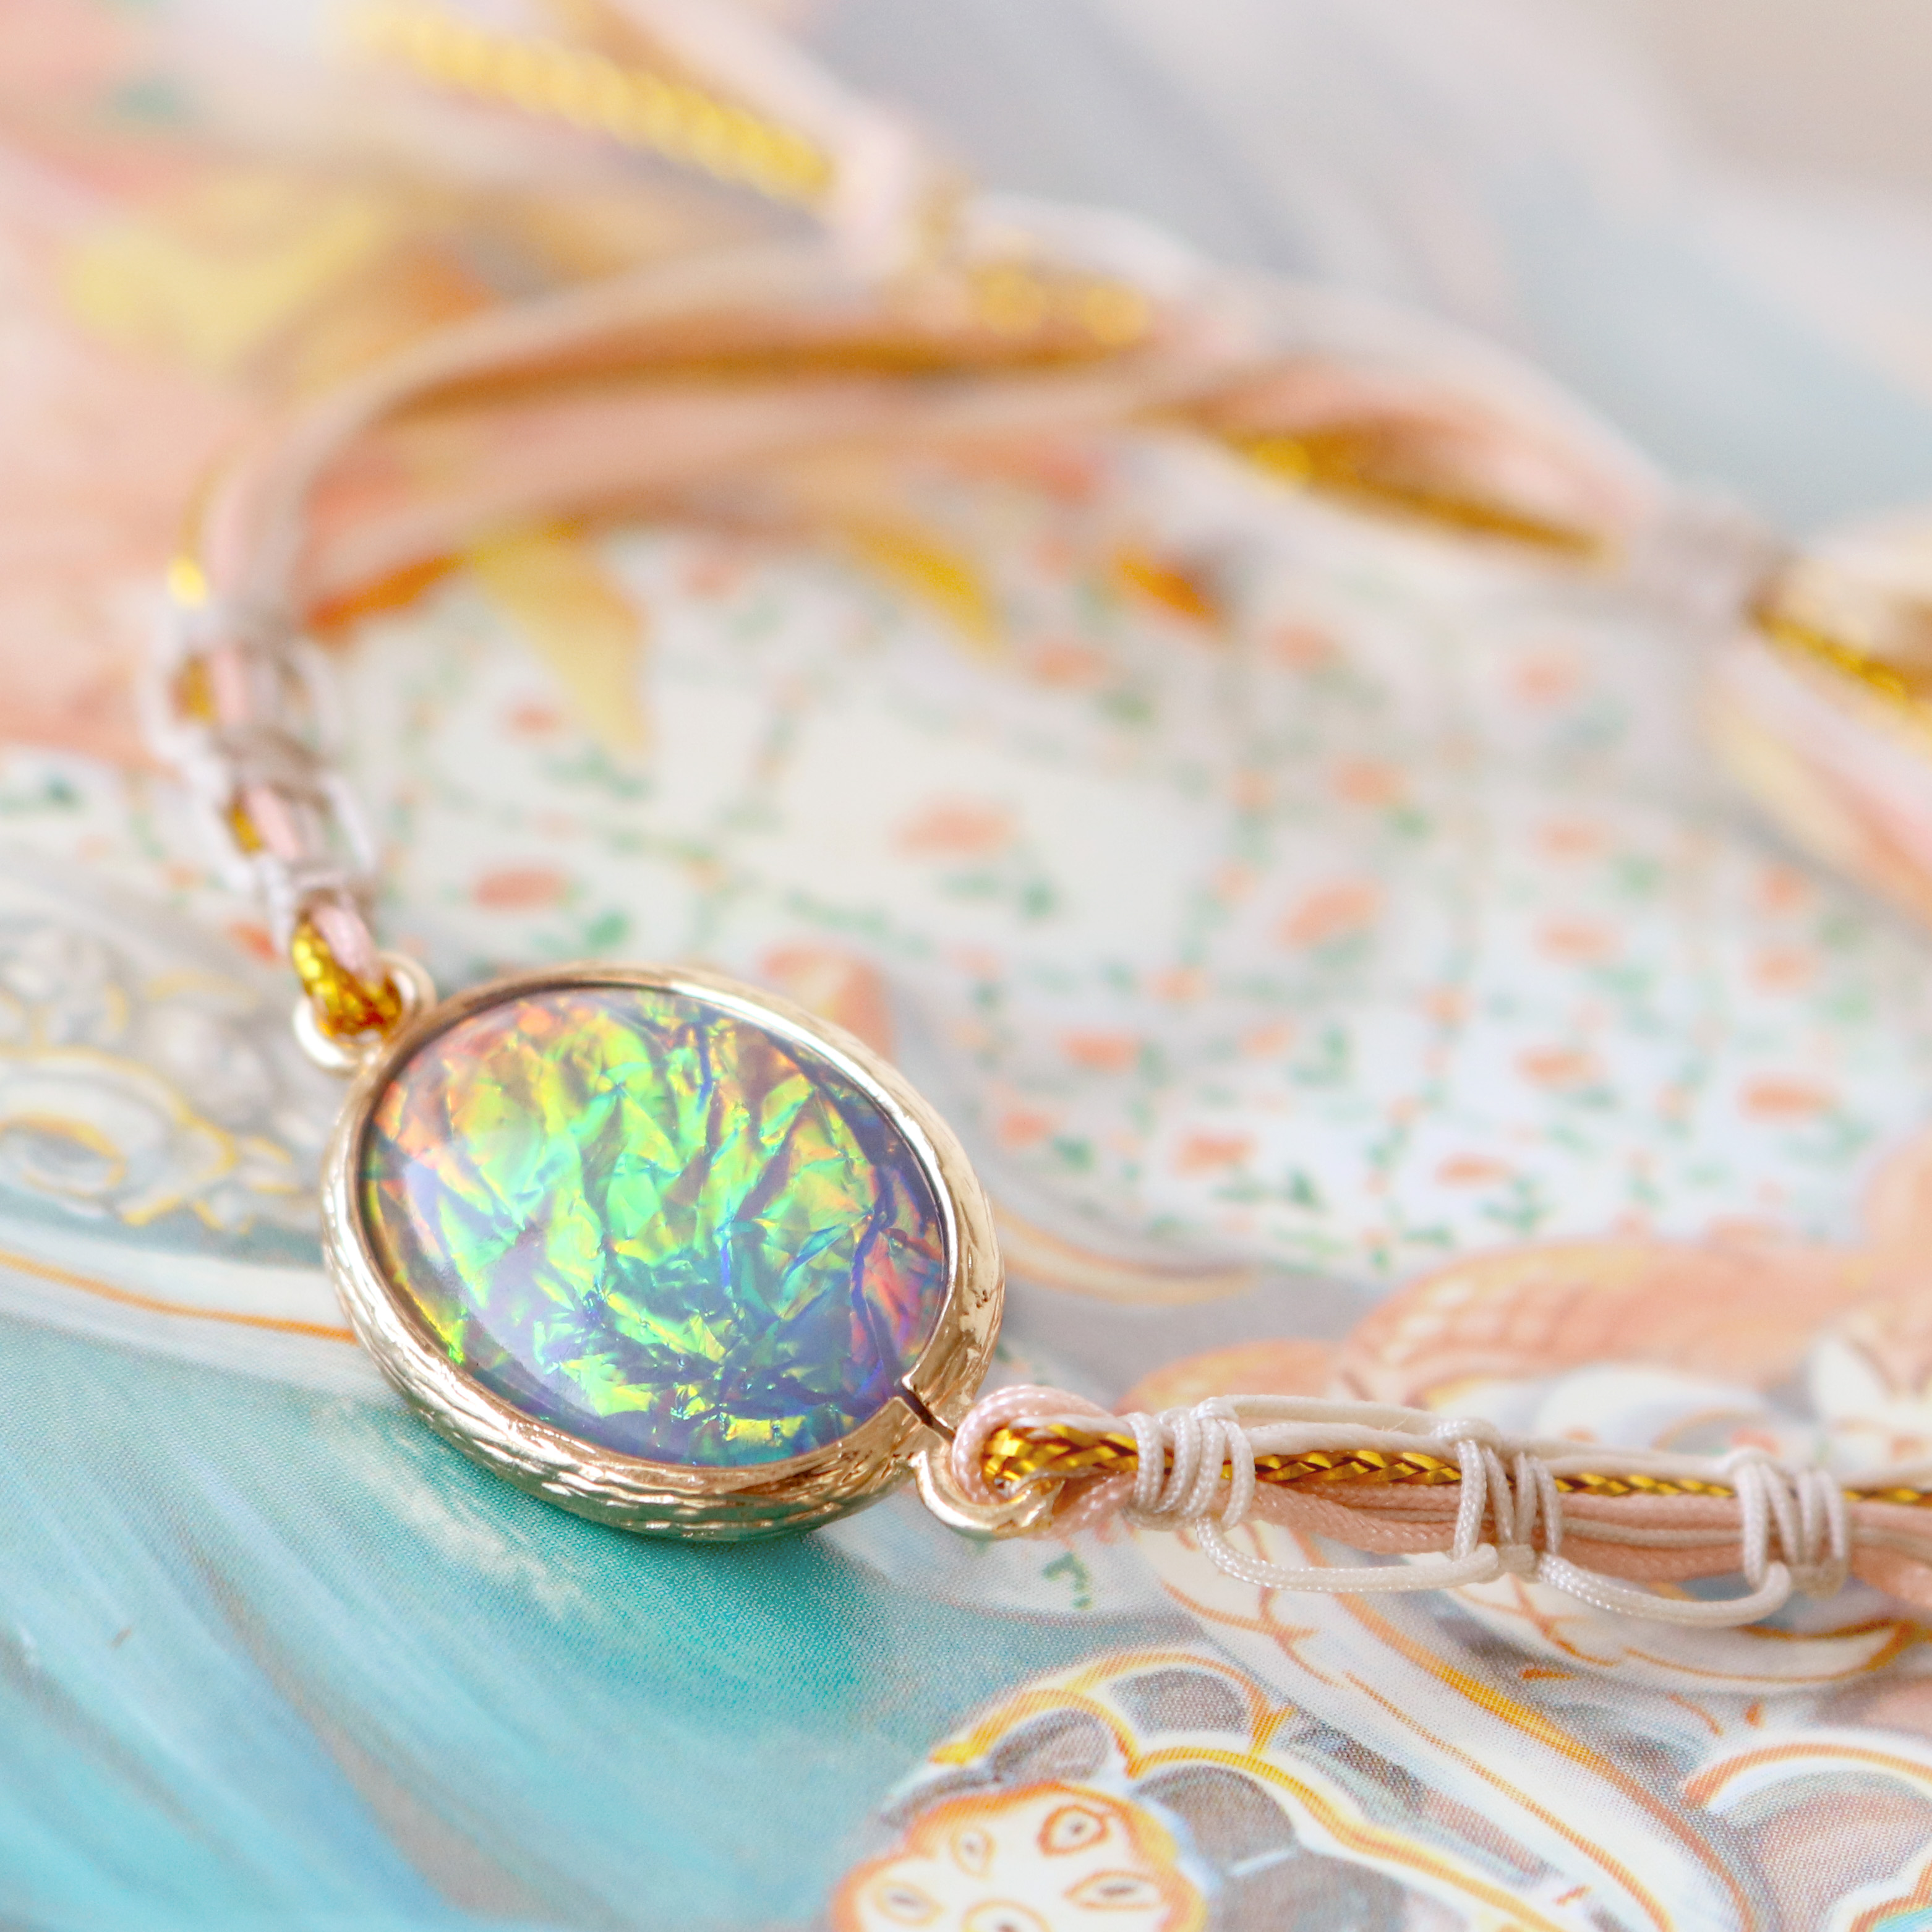 Jewellery with magical details of new crystal glass charms holographic!